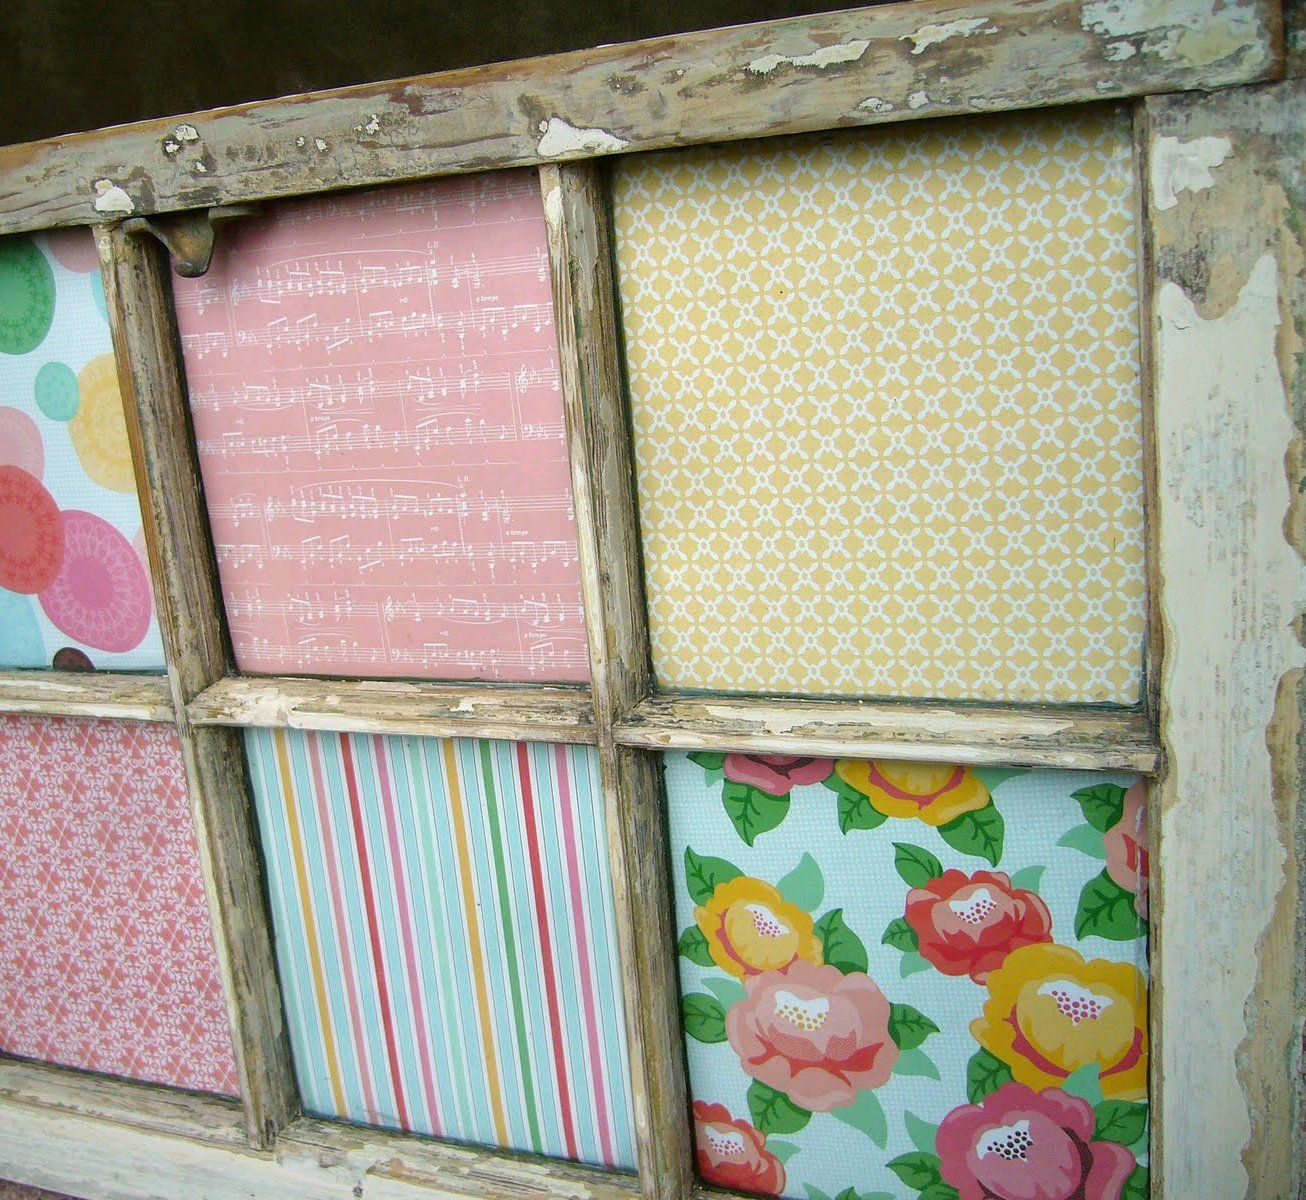 Scrapbook ideas recycled - Old Salvaged Windows Upcycled Recycled Diy Home Decor Scrapbook Paper Behind Old Window Frame Salvage Recycle Upcycle Repurpose For Ideas And Goods